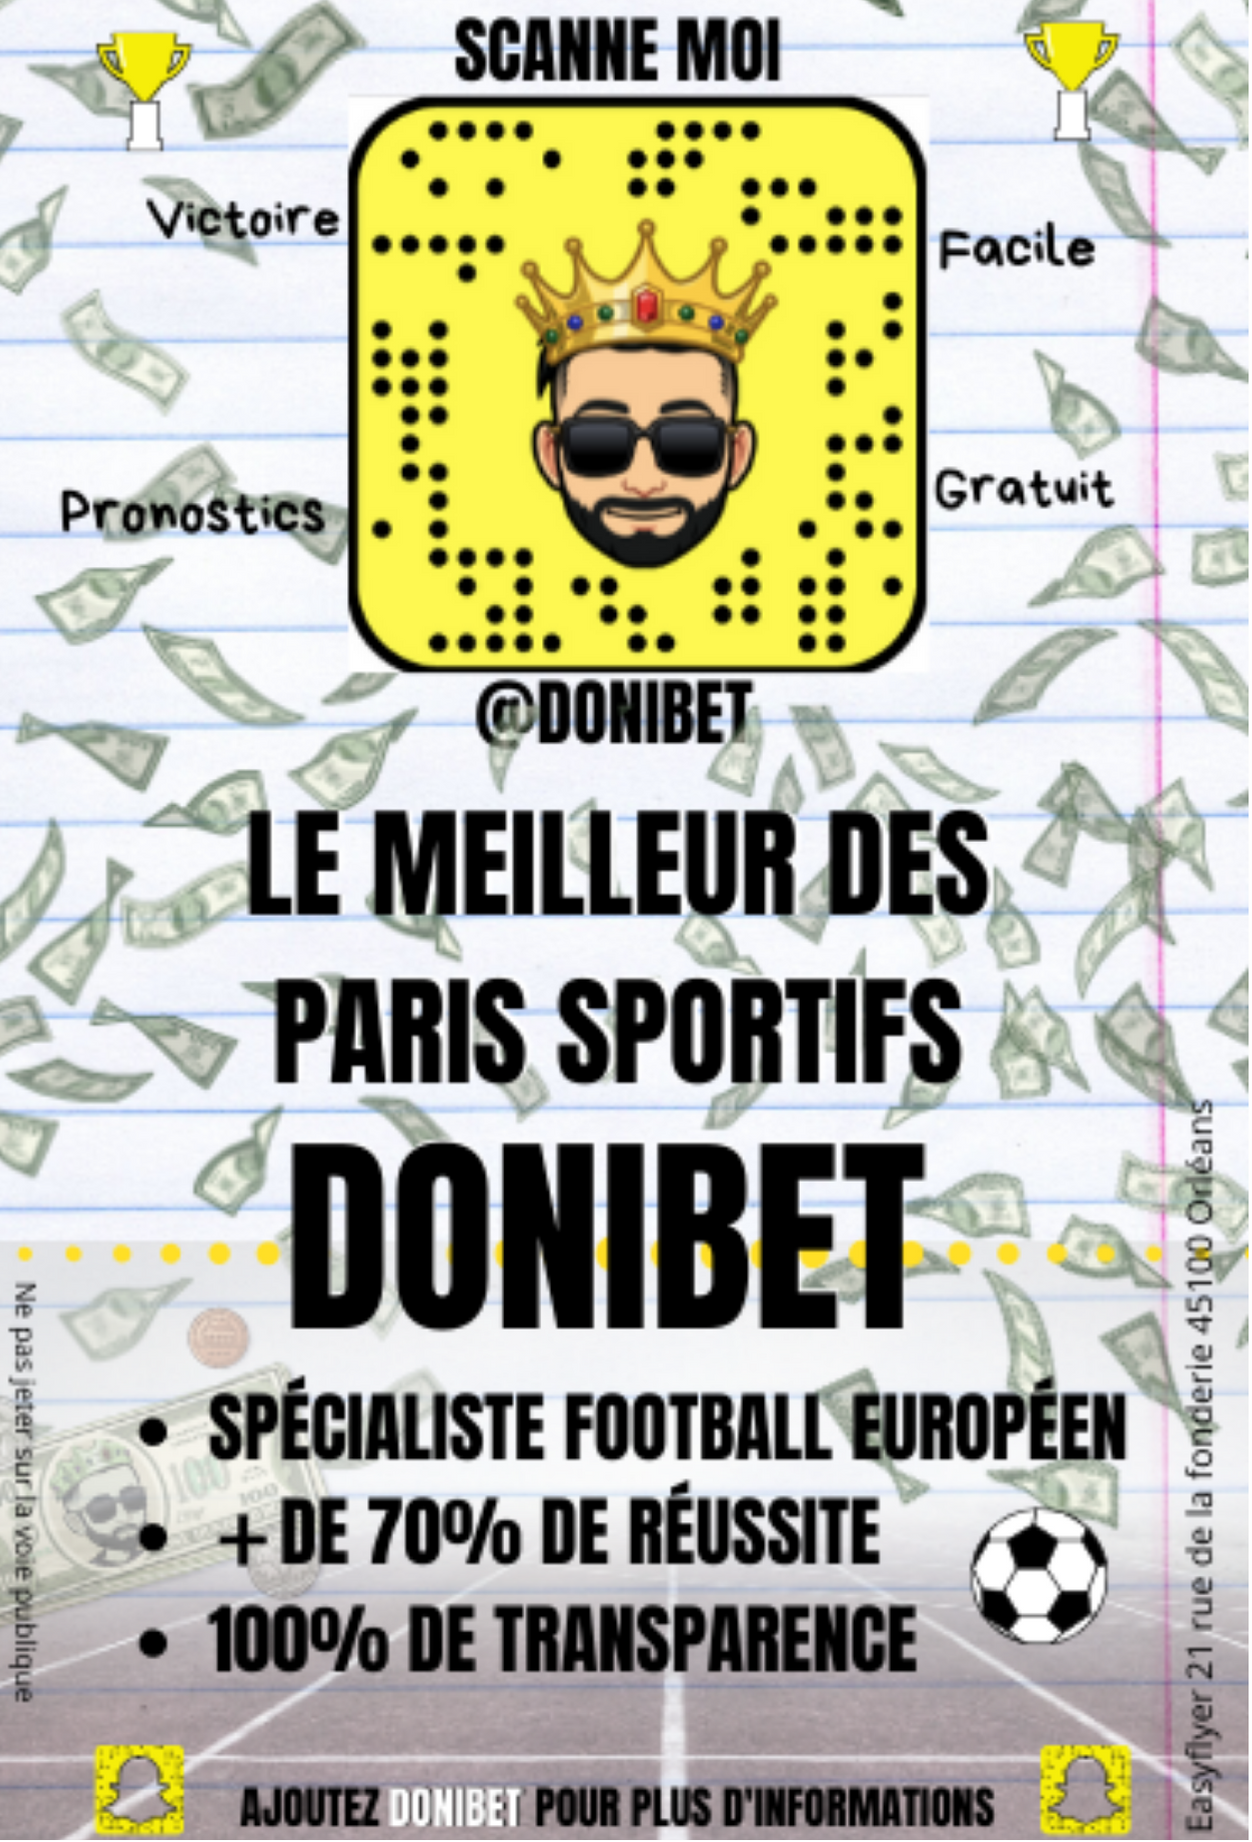 Flyers Donibet paris sportifs